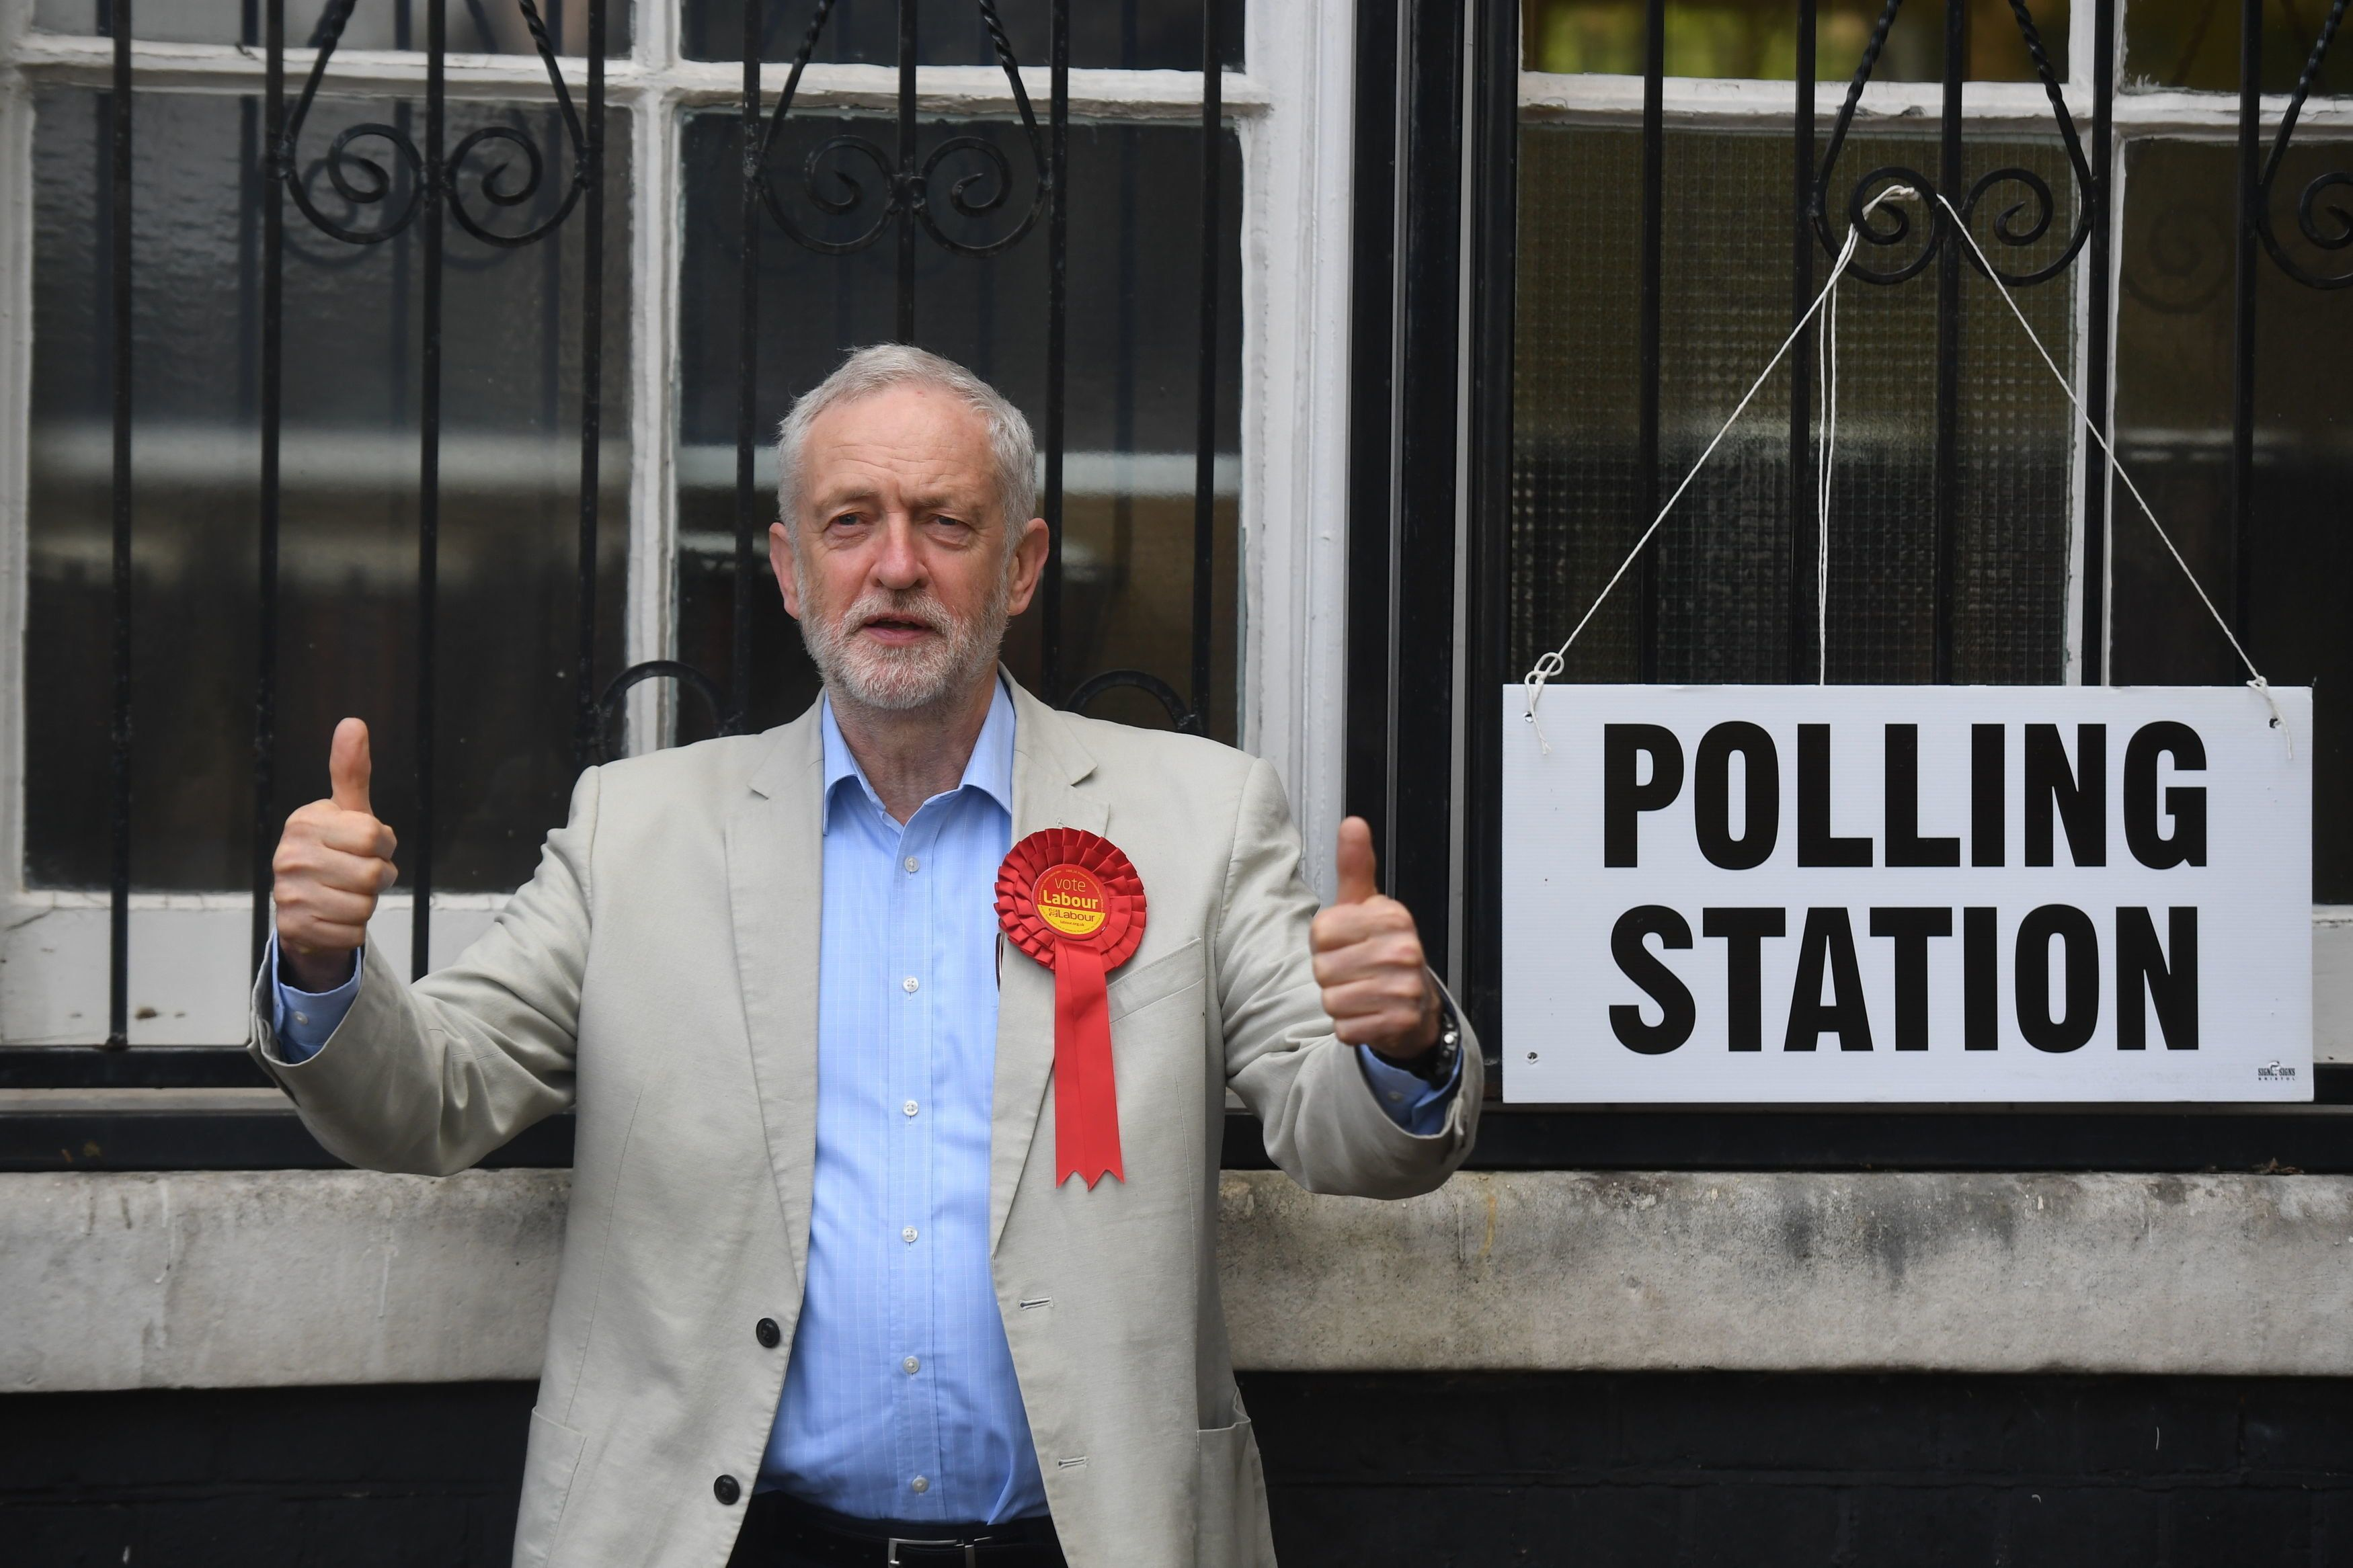 Labour leader Jeremy Corbyn claims his party has 'made progress in the places we need to win in the next...